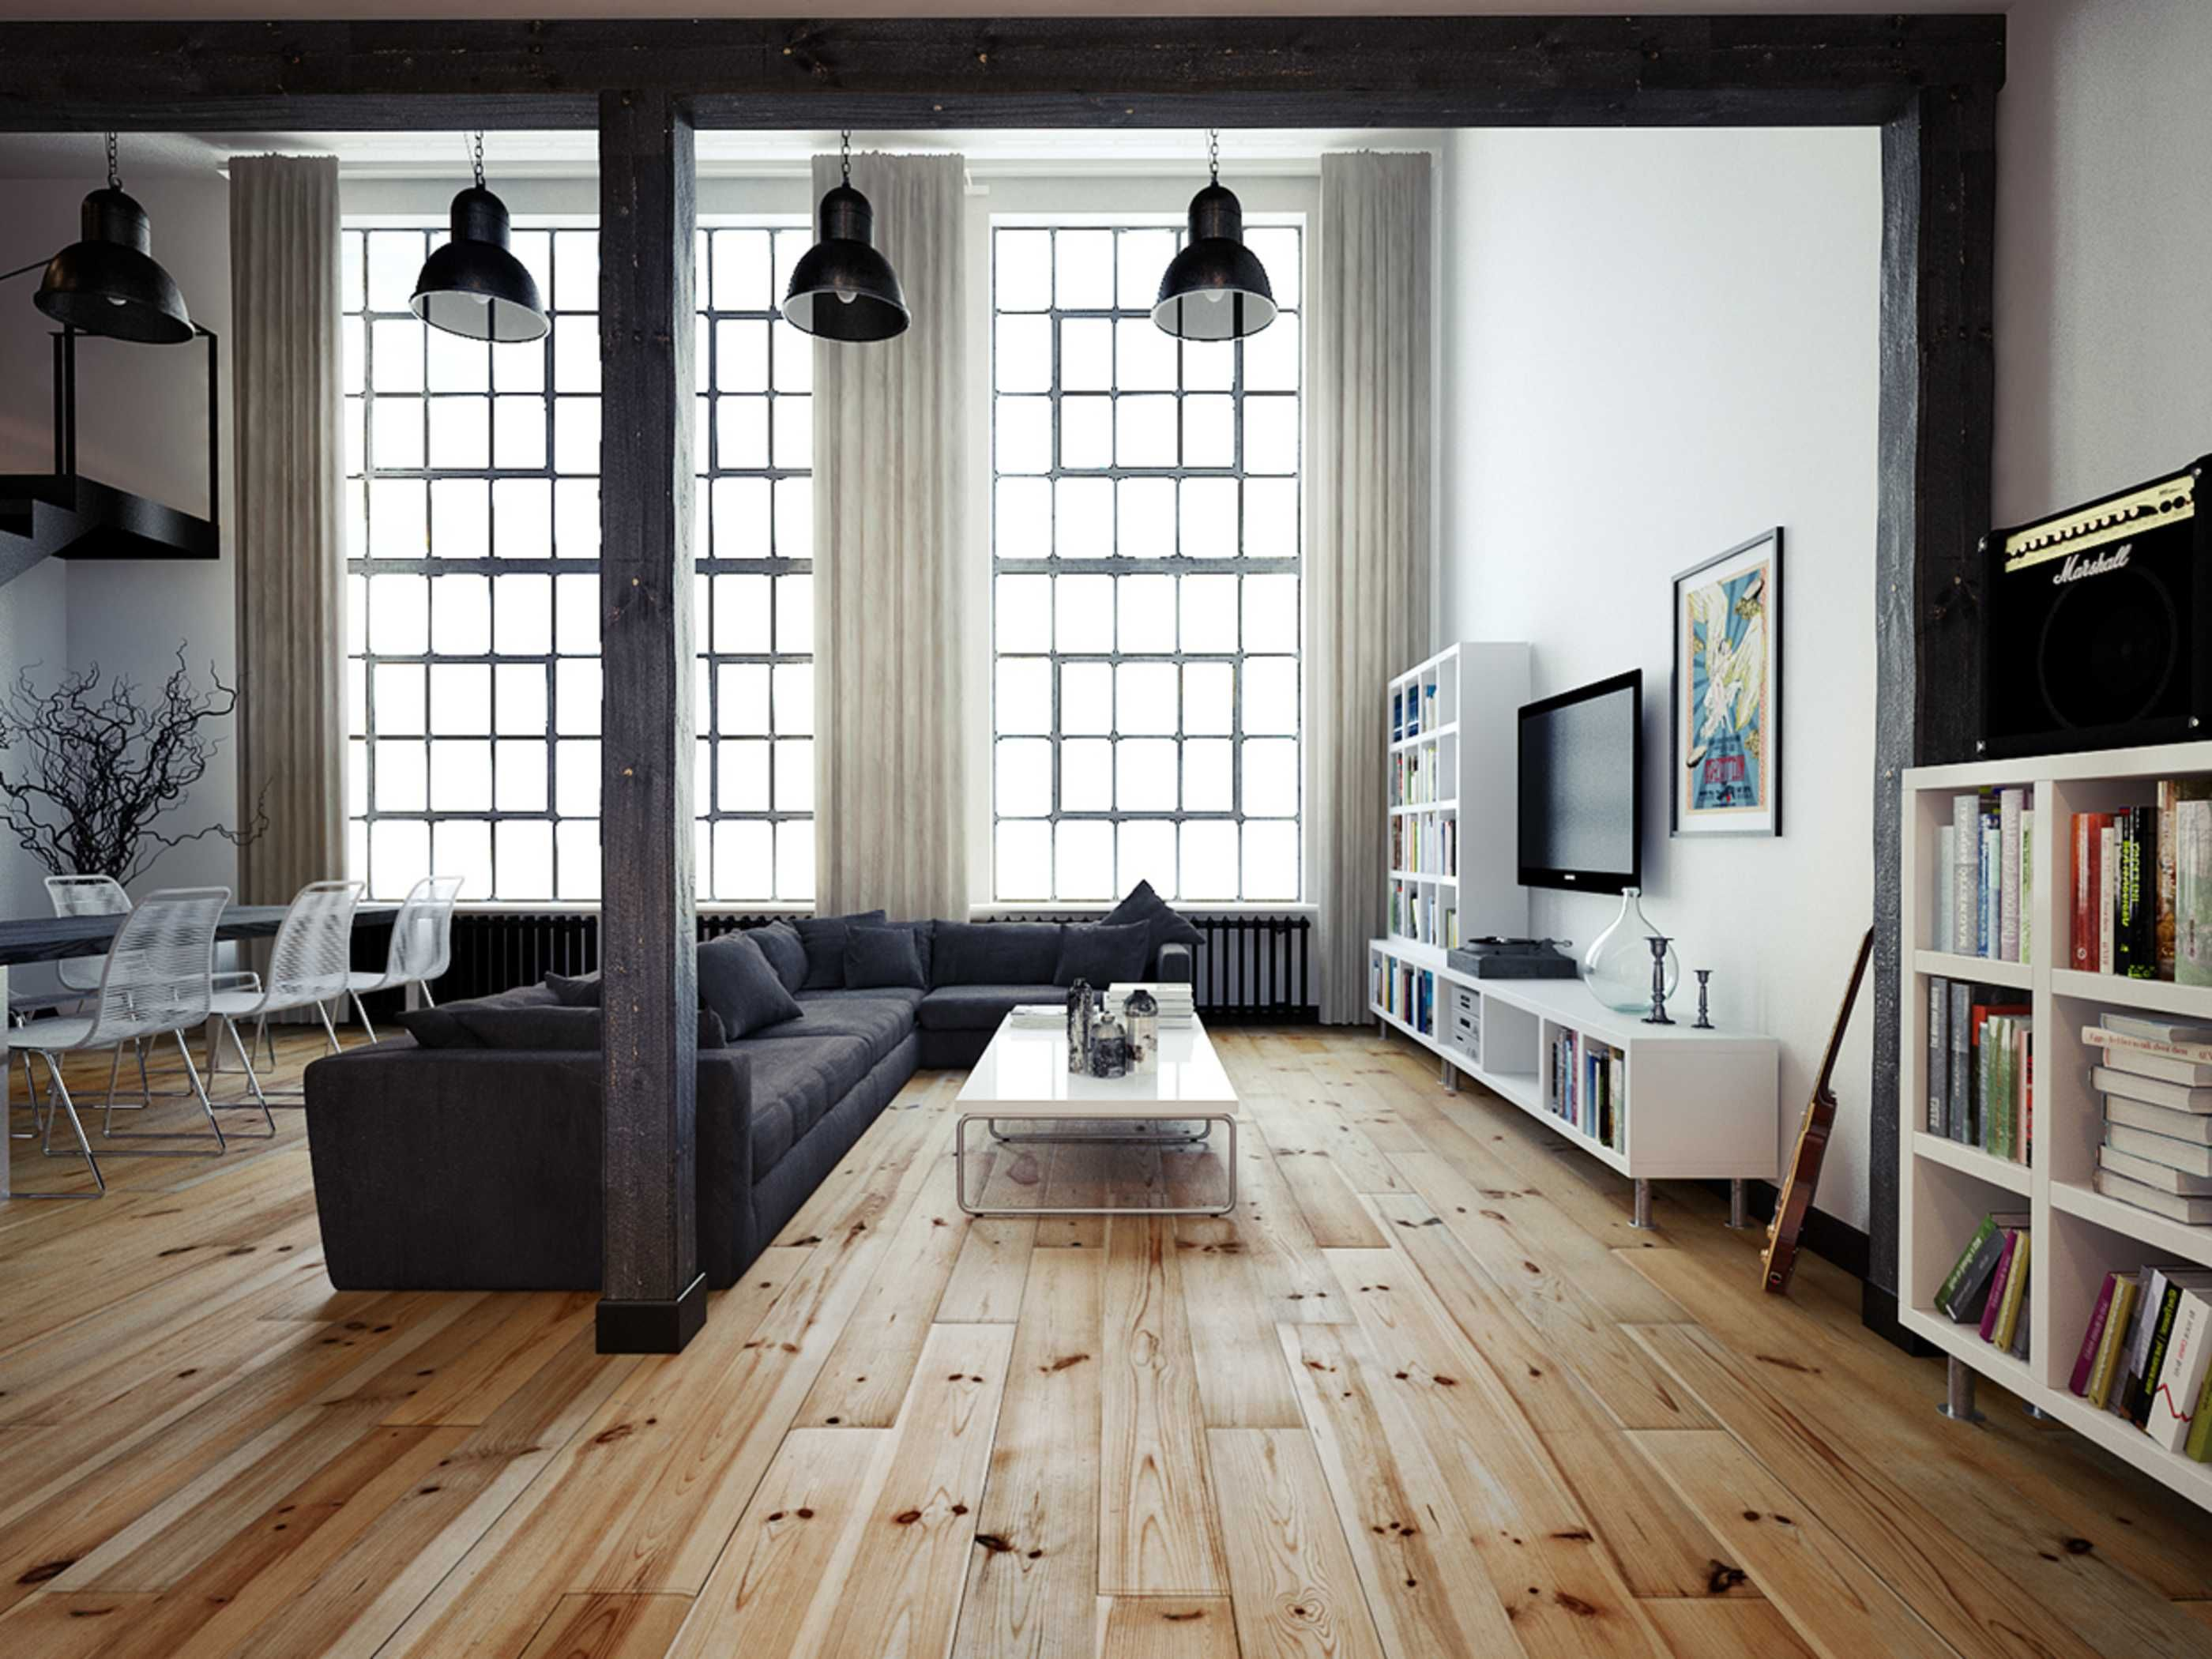 This Polish Loft Apartment is All Kinds of Cool | Innenarchitektur ...